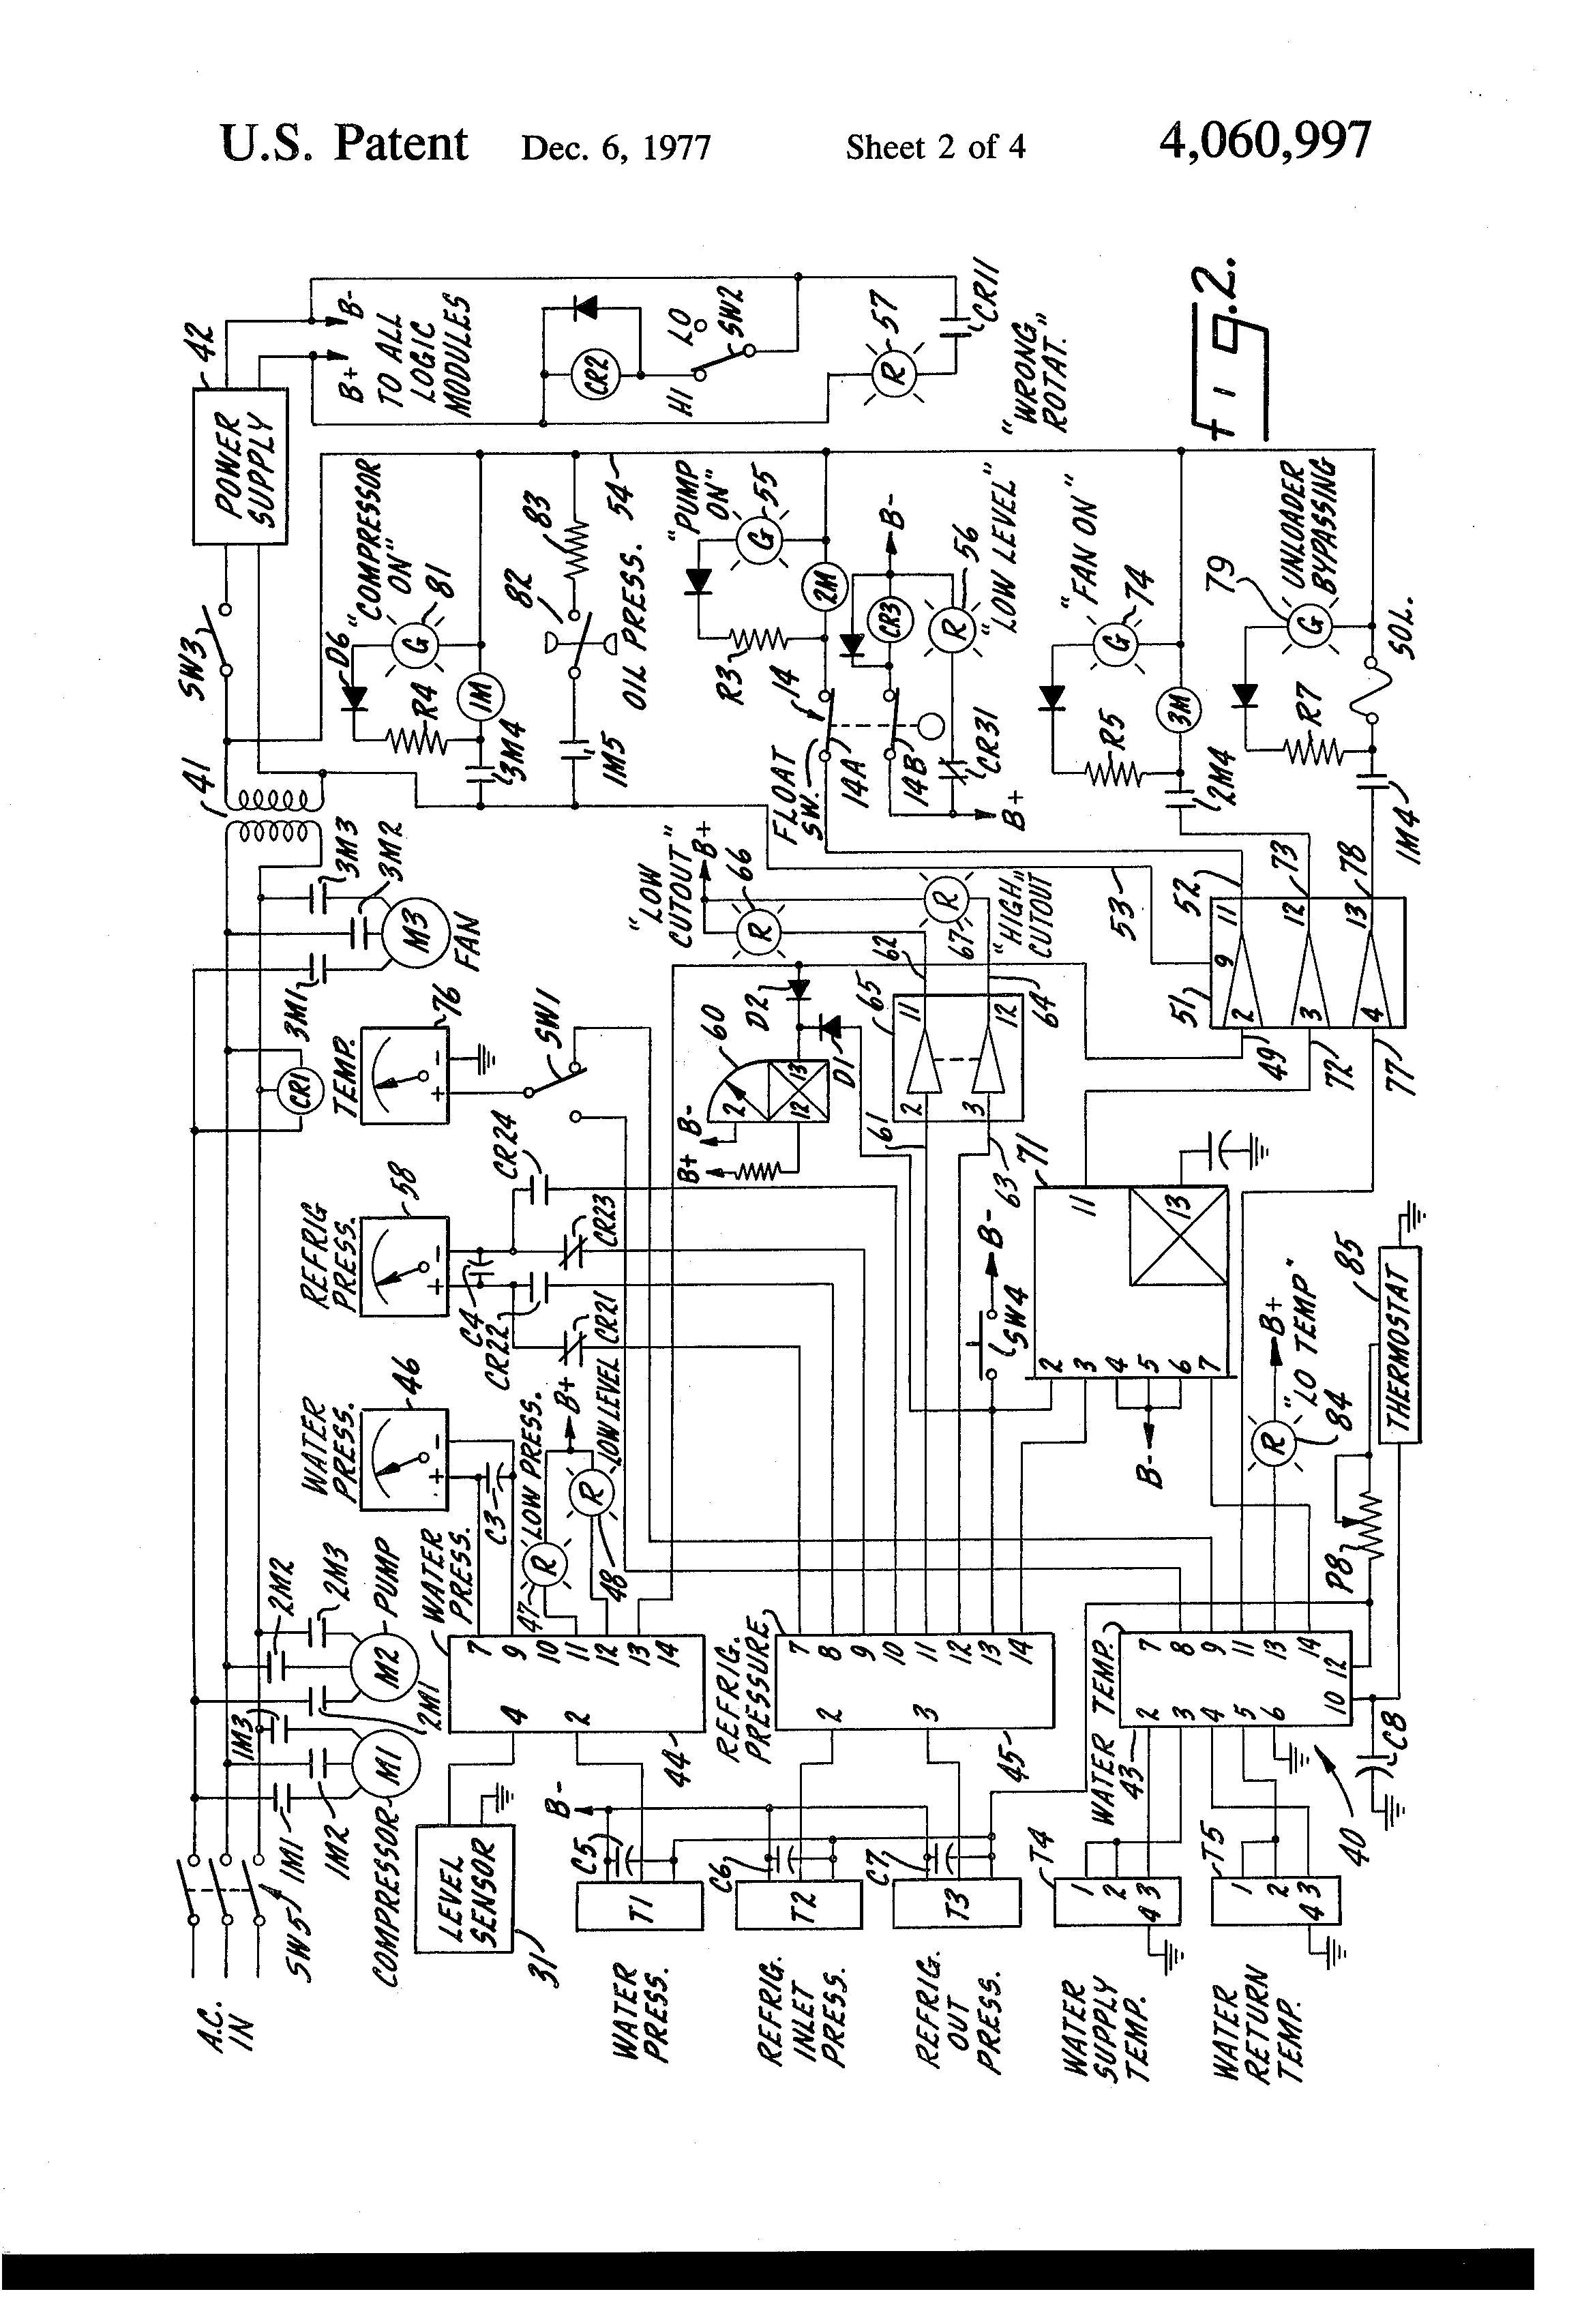 Wiring Diagram For Sears Sears 934